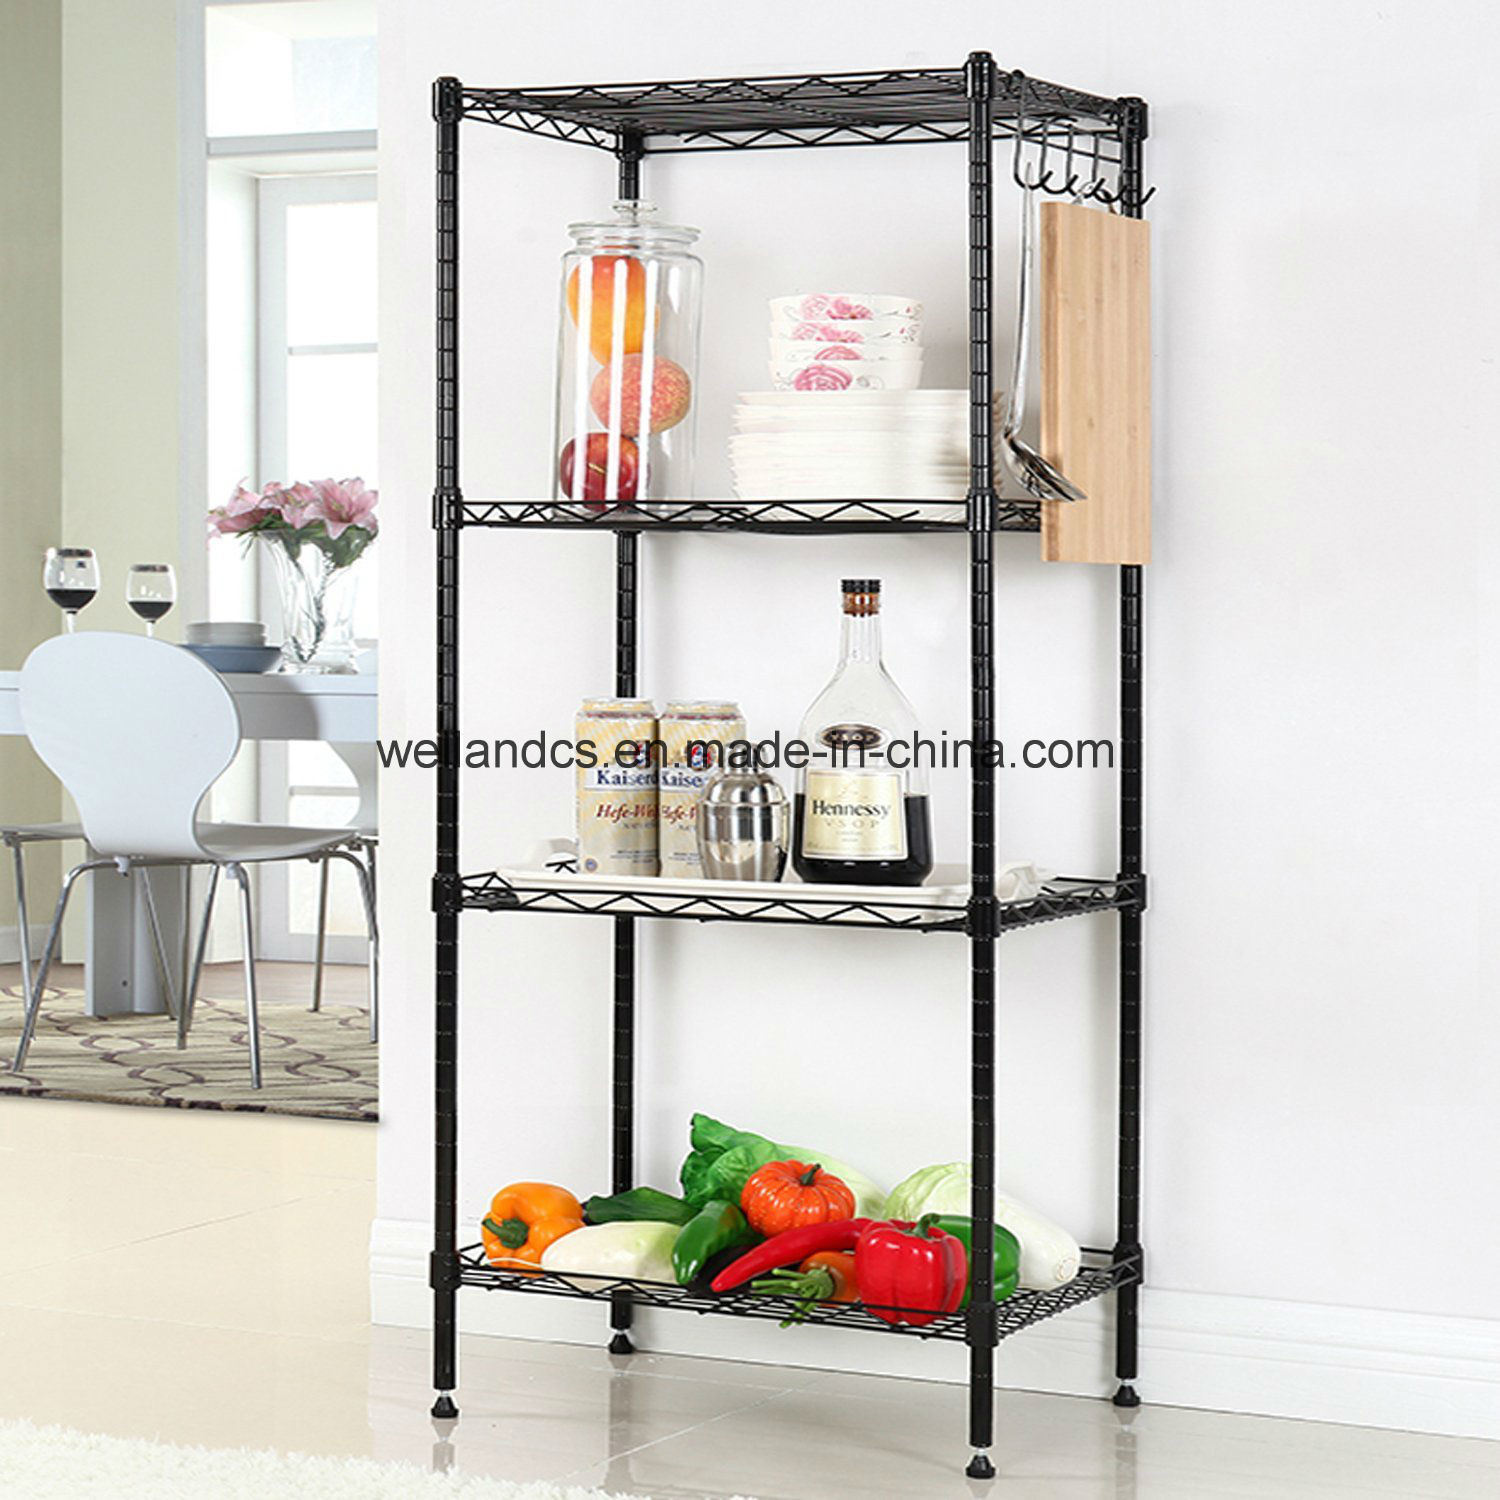 China Adjustable 4 Tier Powder Coated Black Wire Shelving Unit Kitchen Food Pantry Storage Shelf Accessories China Pantry Storage Shelf And Pantry Storage Rack Price